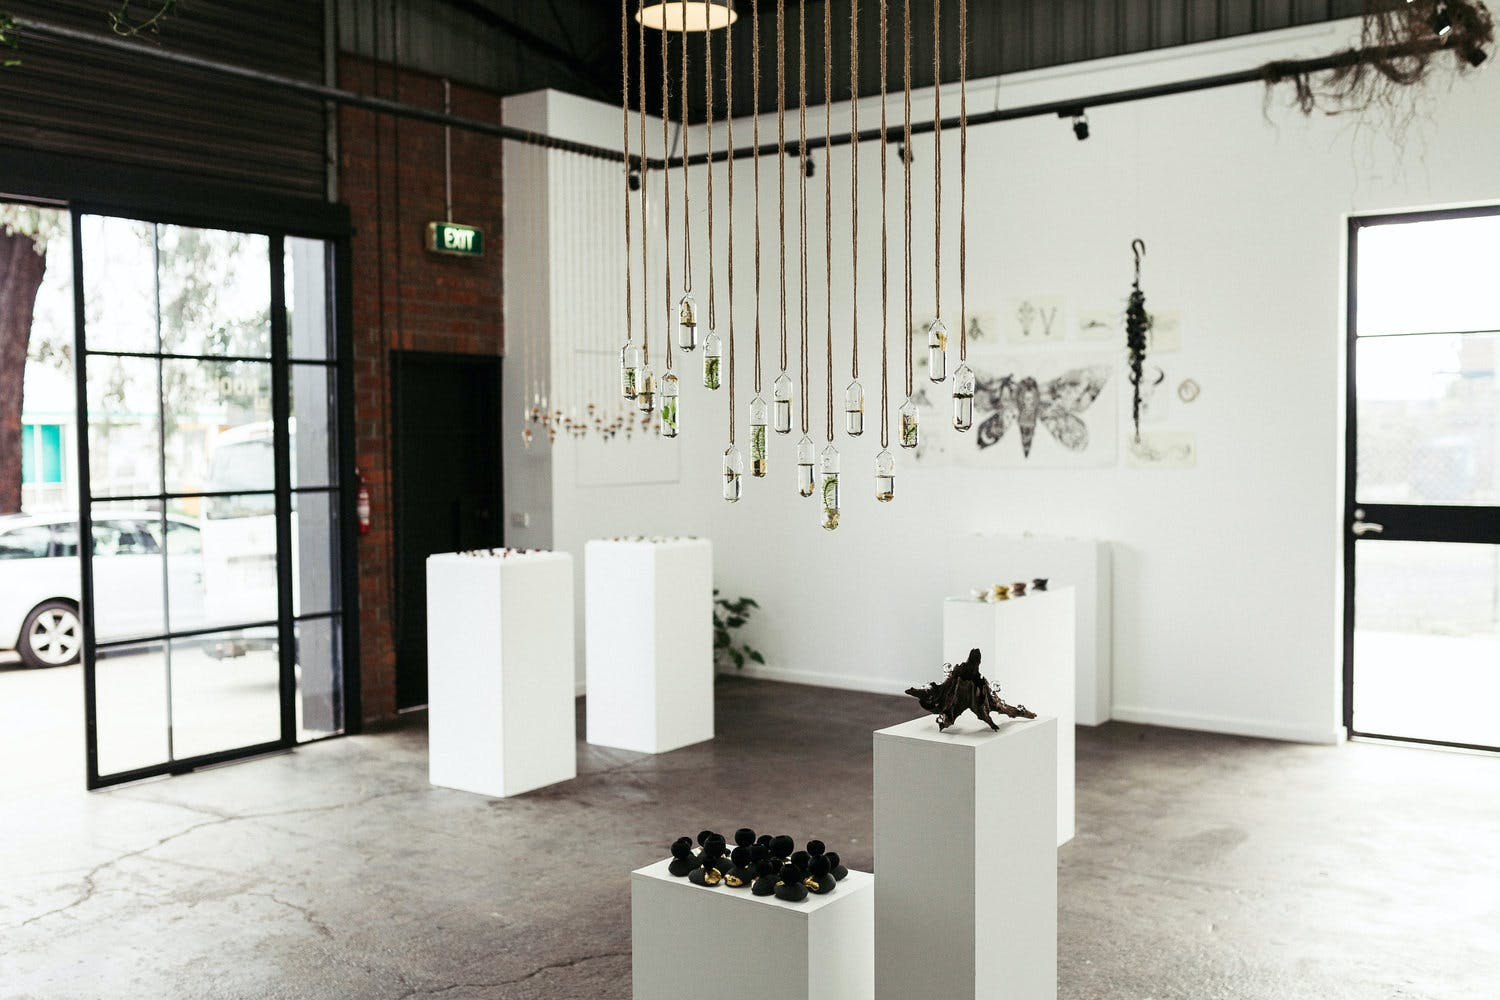 Event Space, gallery at The Nook Gallery & Studios, image 3